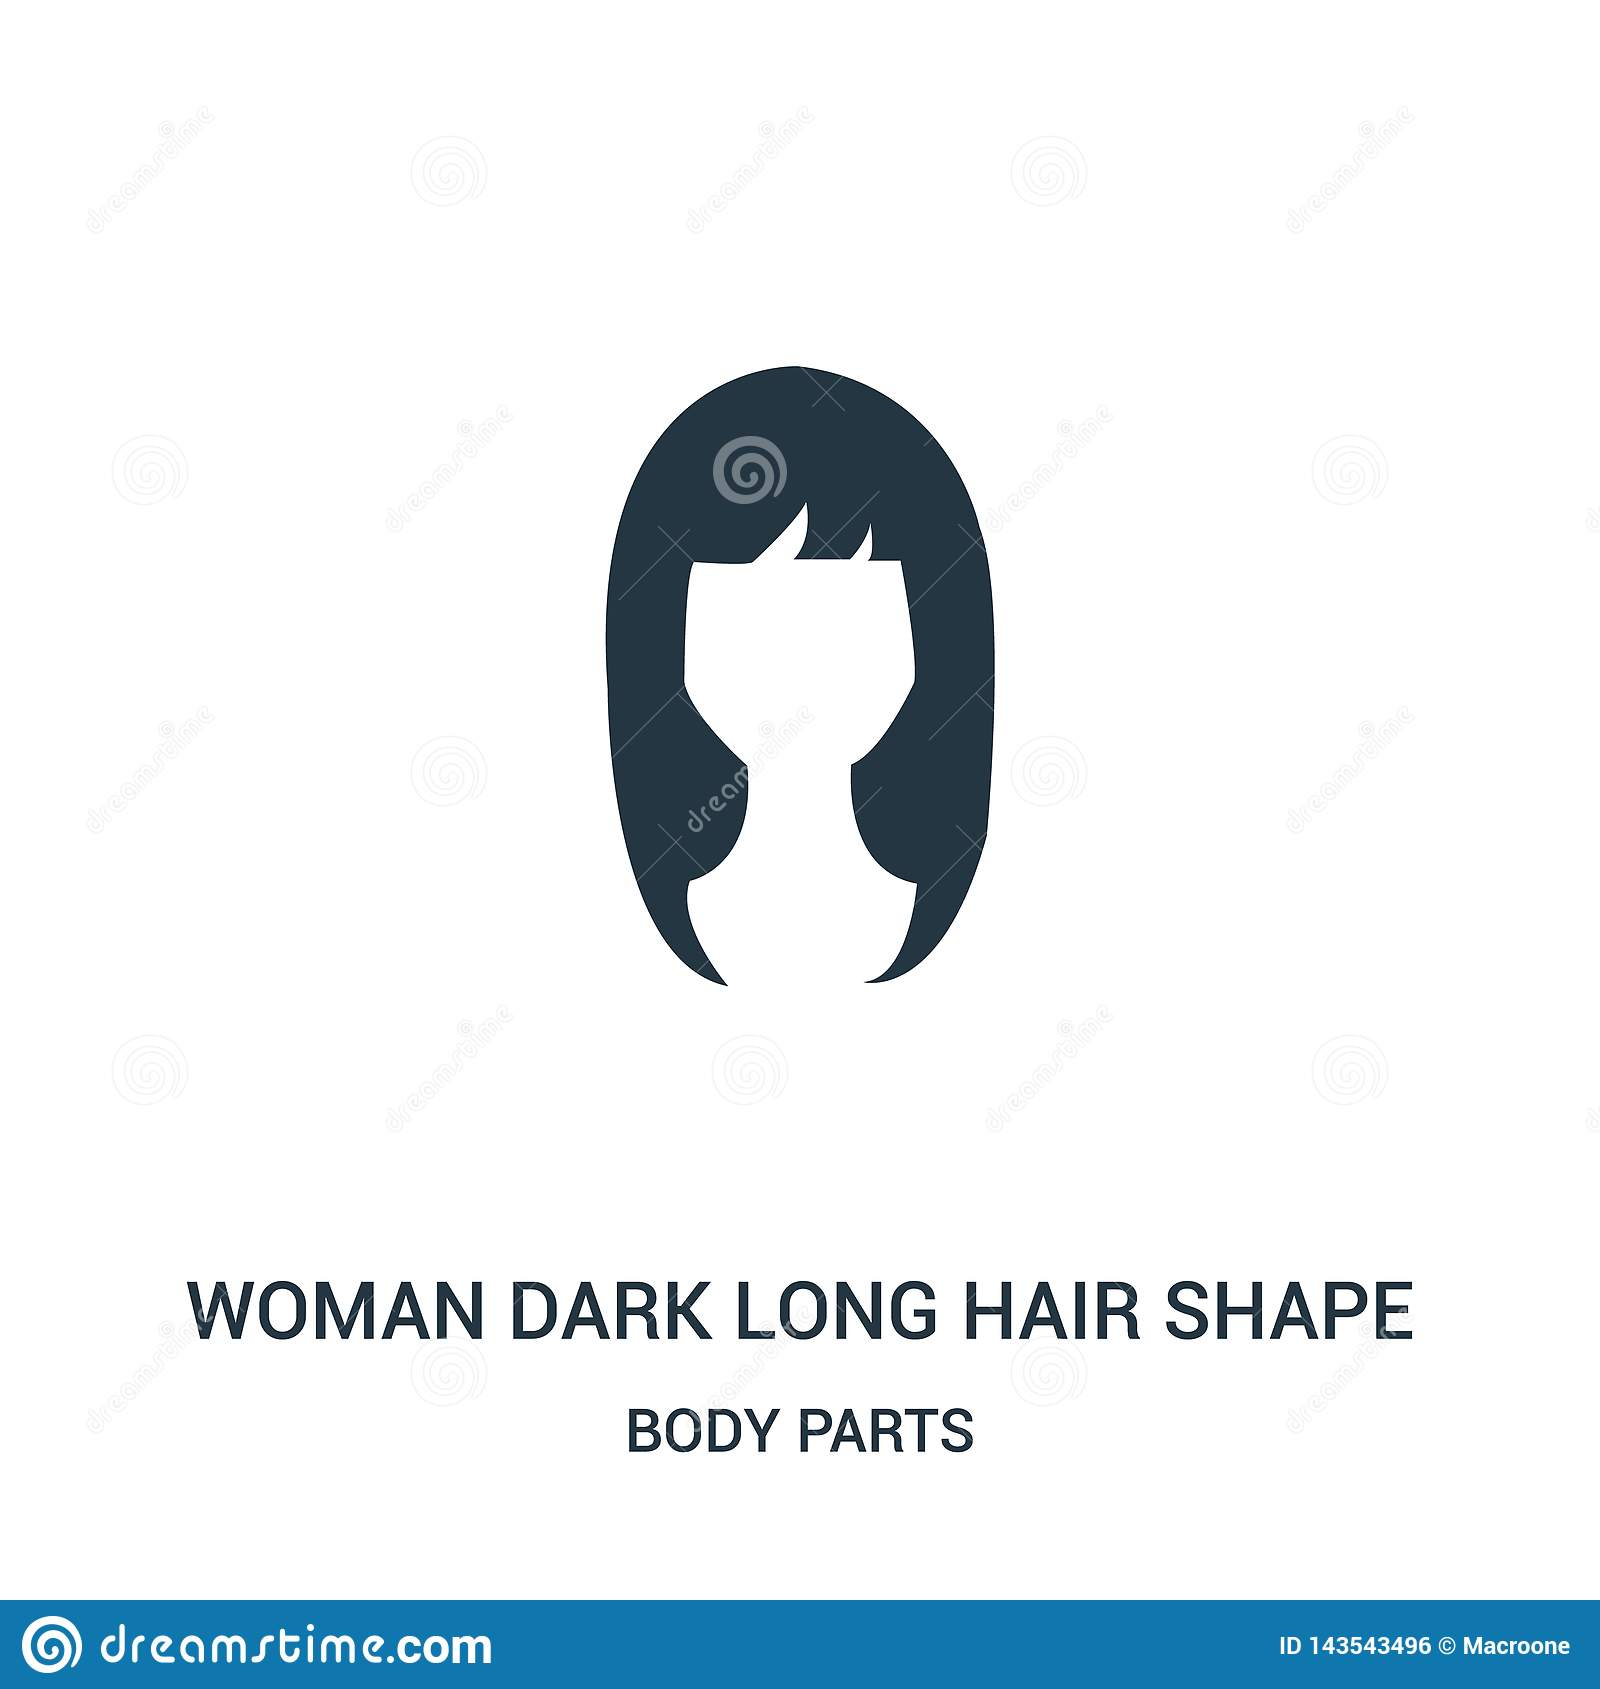 woman dark long hair shape icon vector from body parts collection. Thin line woman dark long hair shape outline icon vector